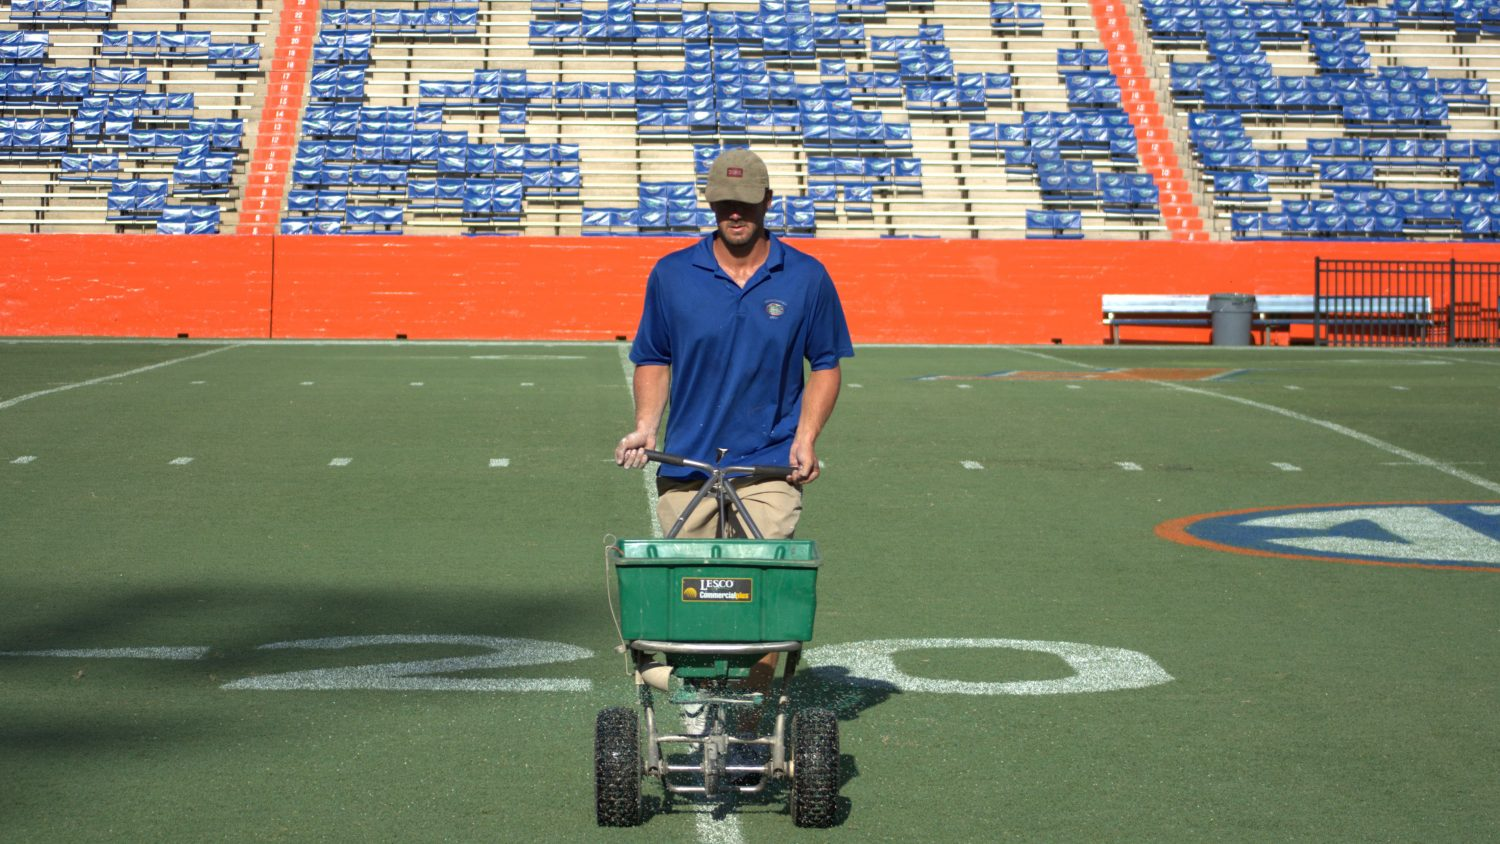 Because of severe weather, the Florida Gators will not play their season opener until Sept. 6. This will be the Gators' latest start date since 2004, when the Sept. 4 opener against Middle Tennessee State was moved to Oct. 16 because of Hurricane Frances - that season did not begin until Sept. 11.